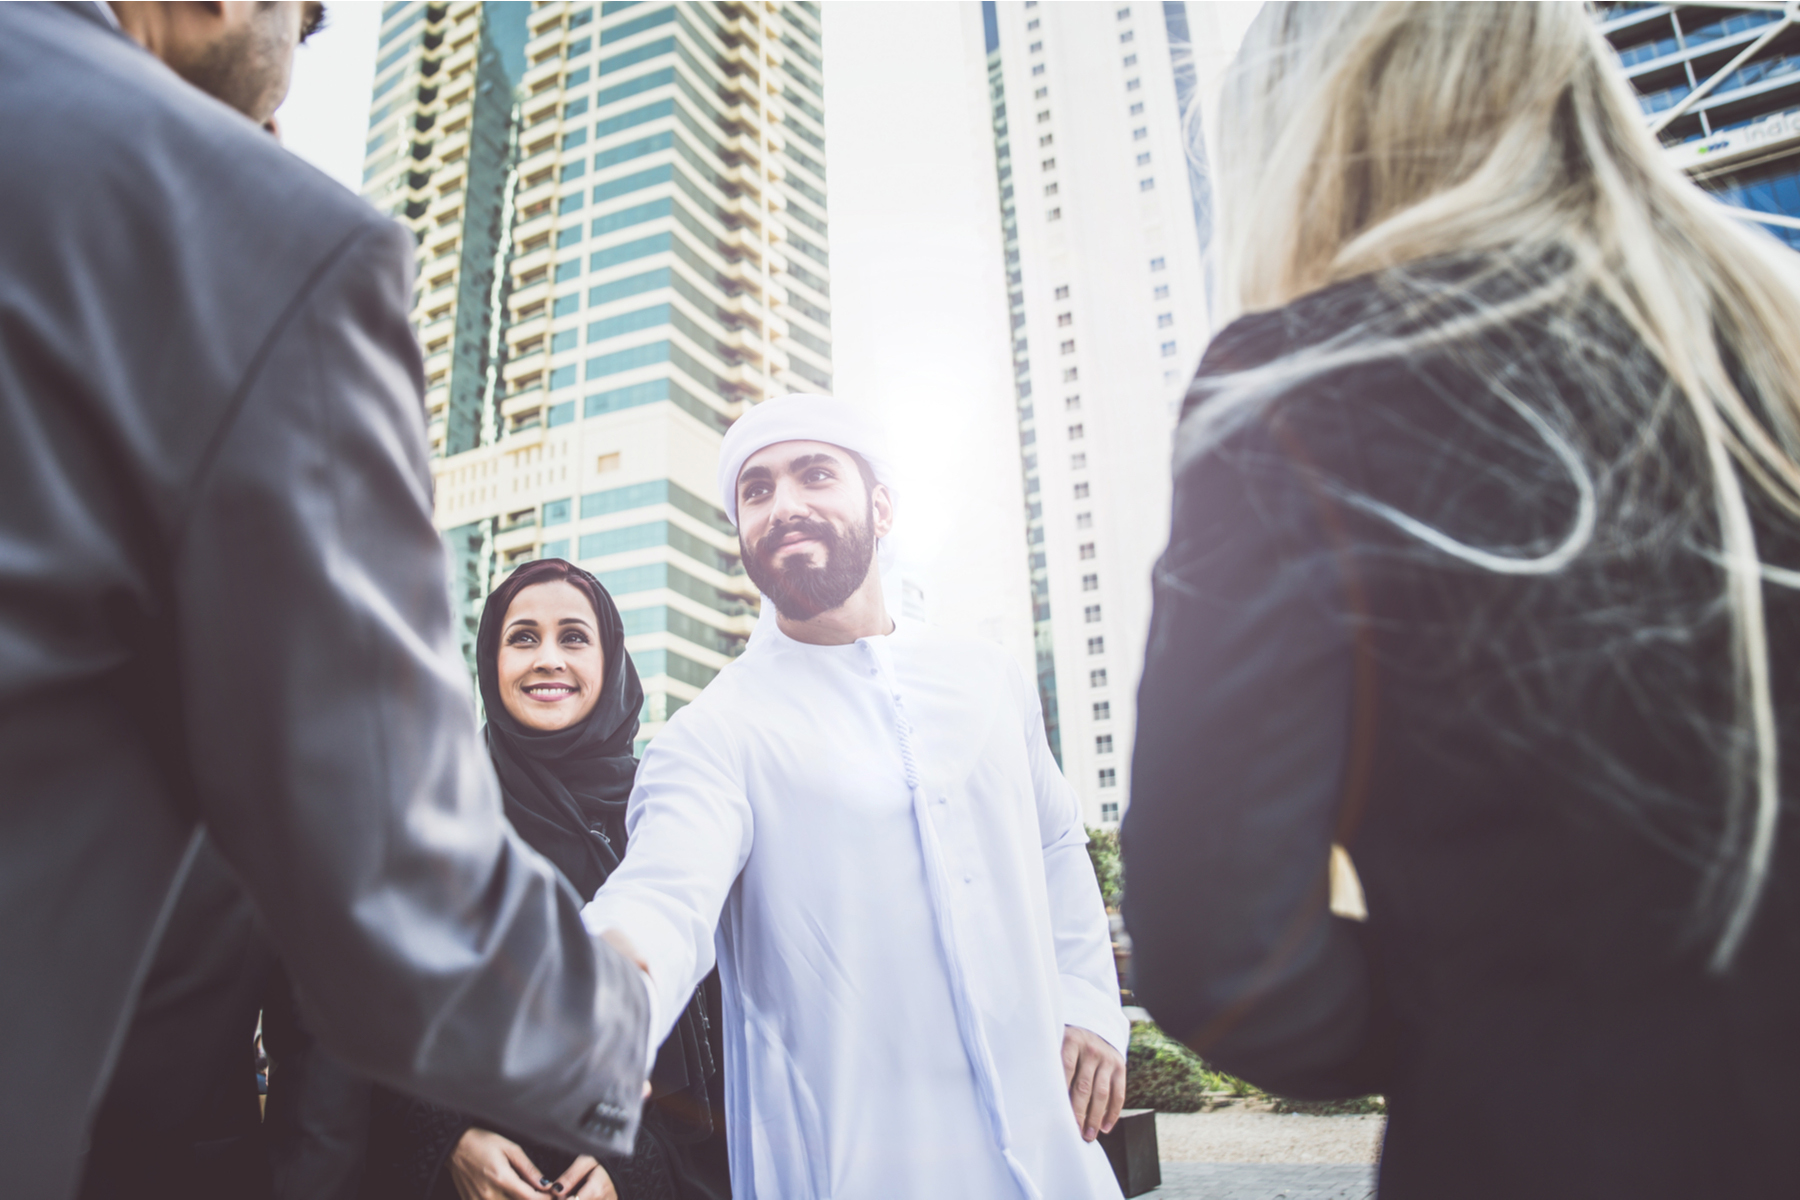 Handshake after a meeting in Dubai